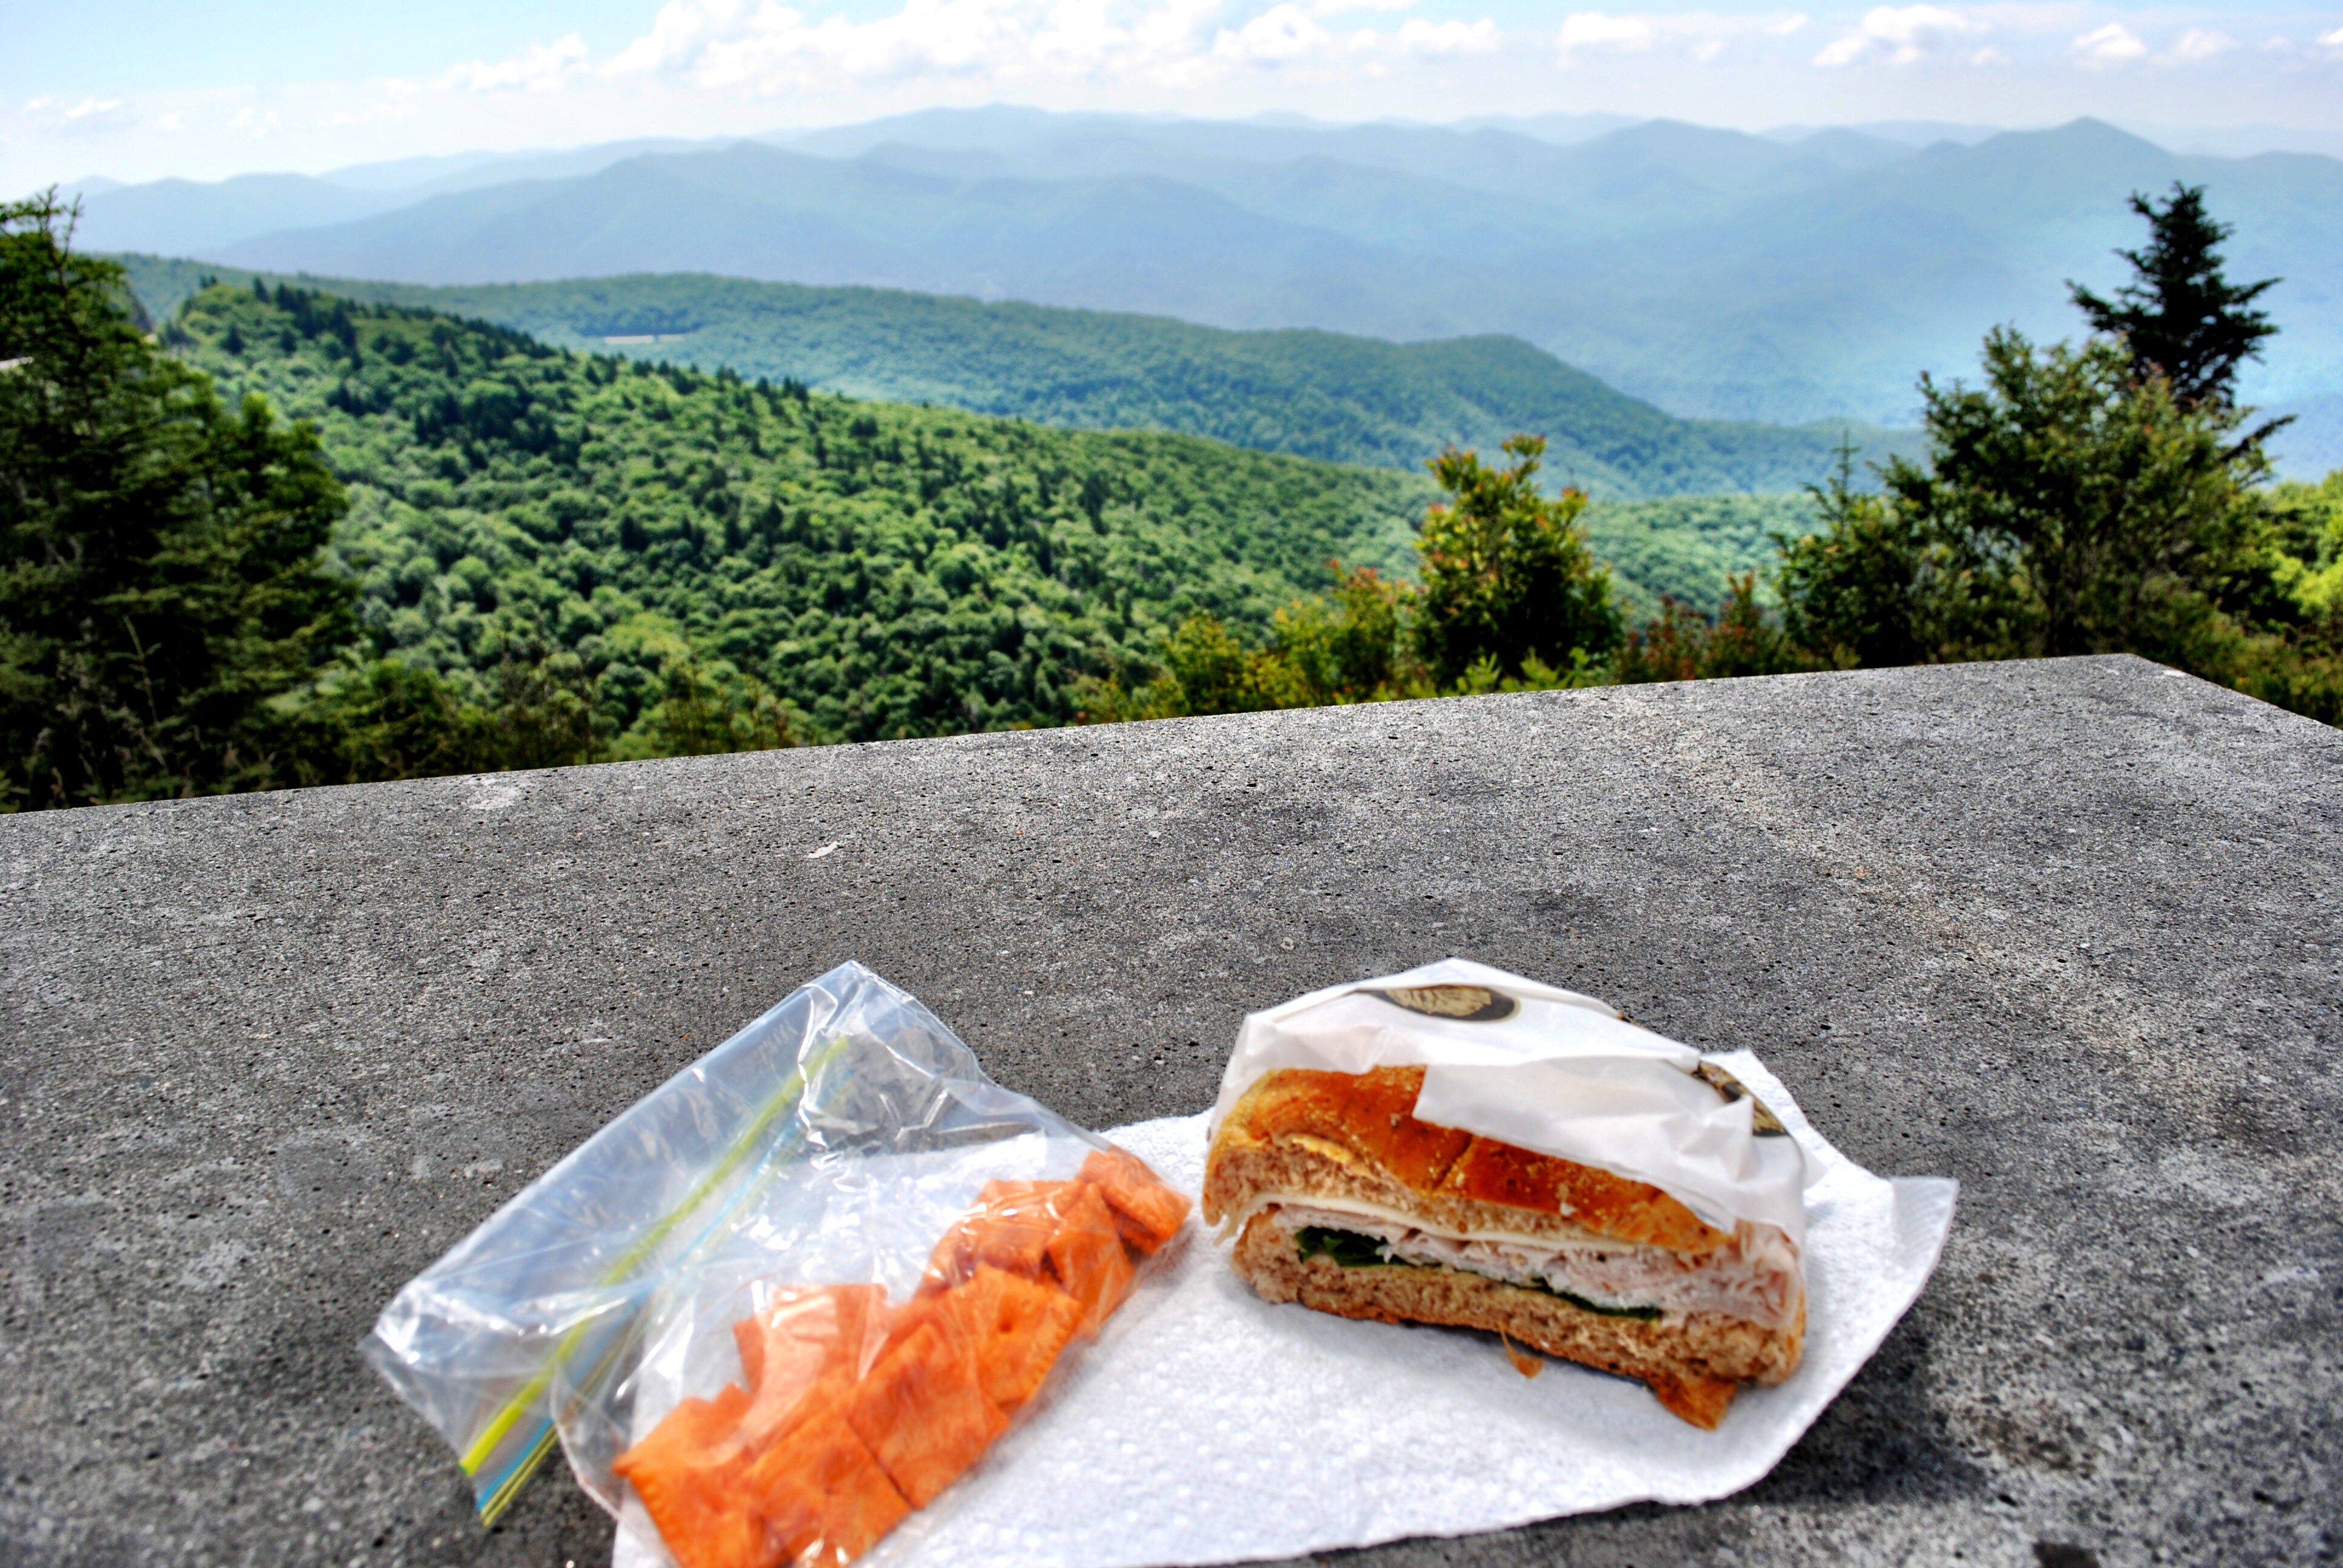 Lunch at Waterrock Knob in North Carolina